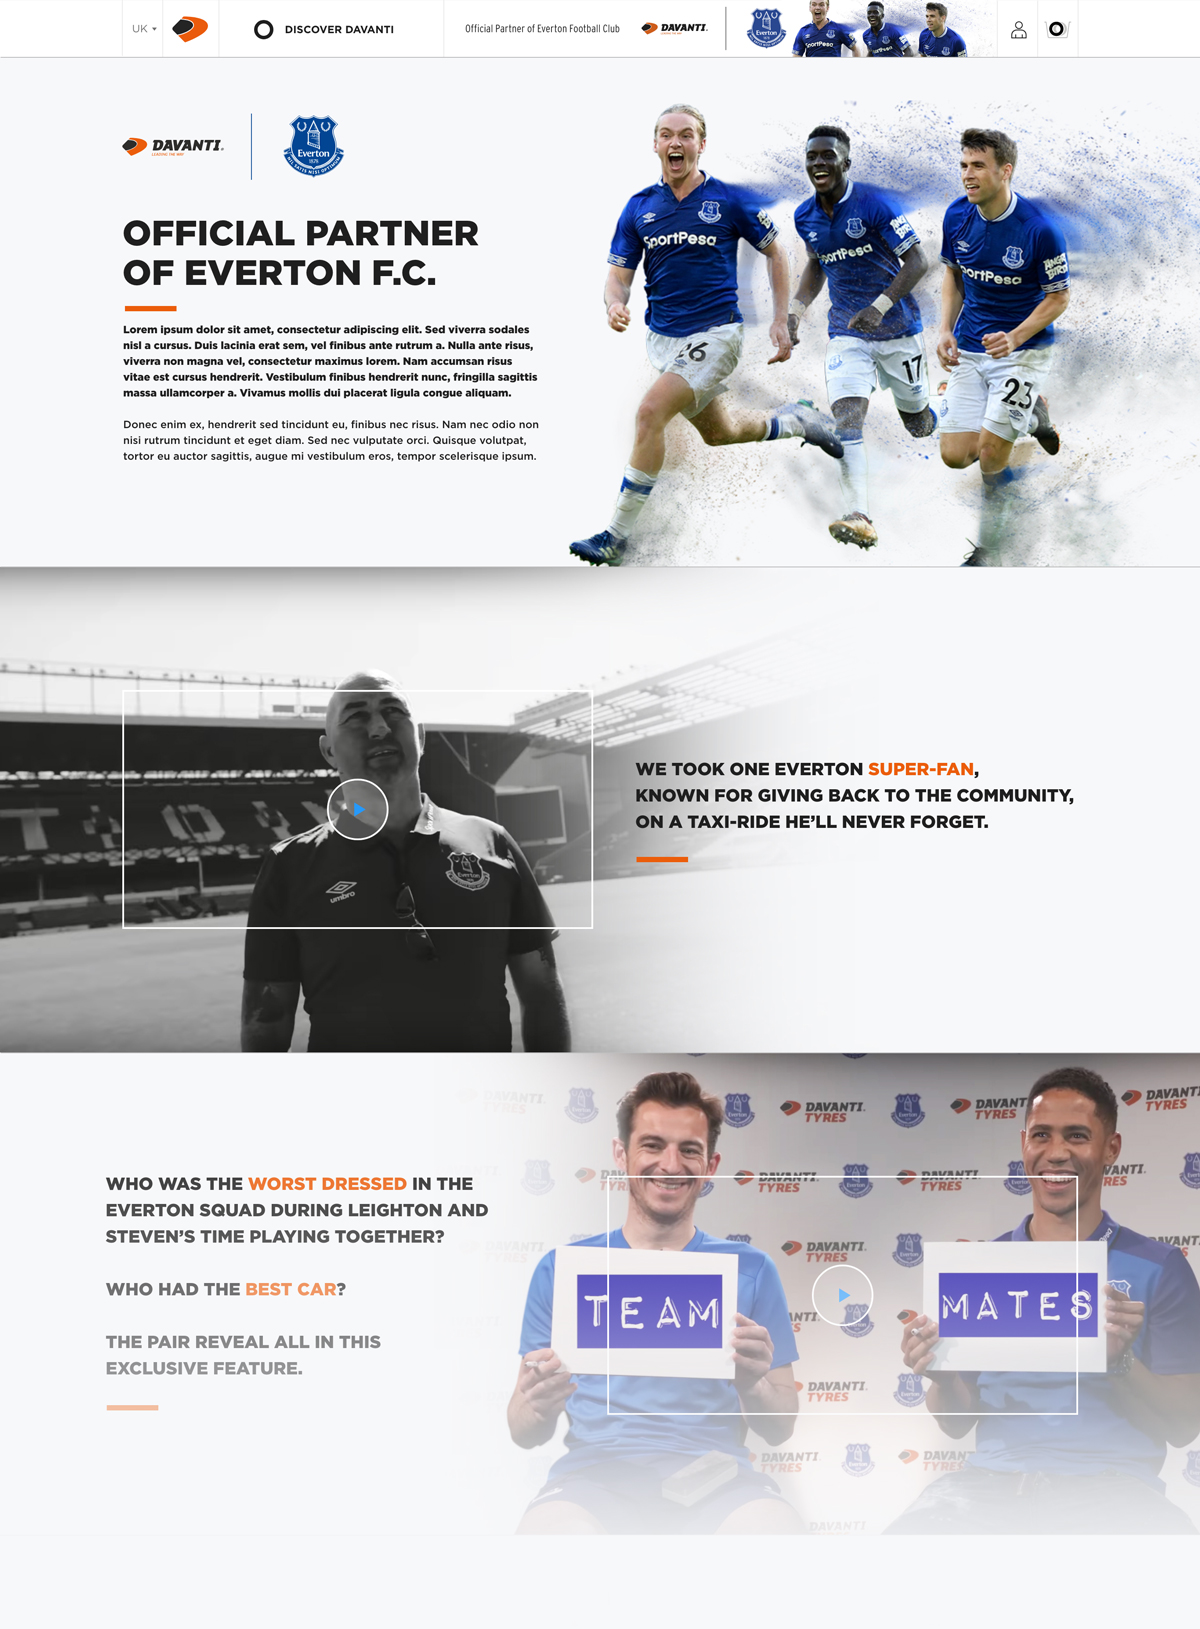 Davanti Everton Partnership